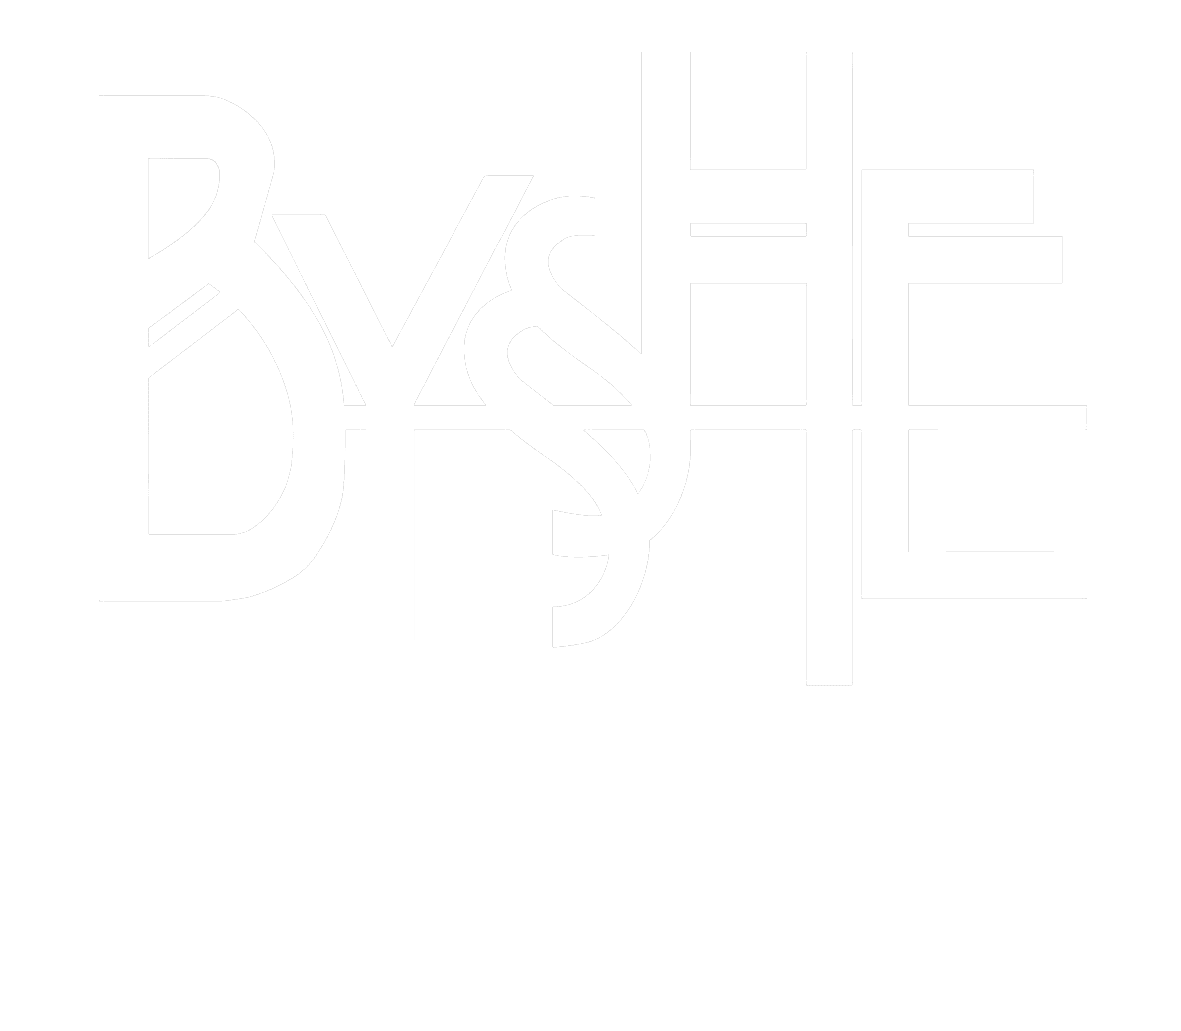 logo du groupe Bysshe Band